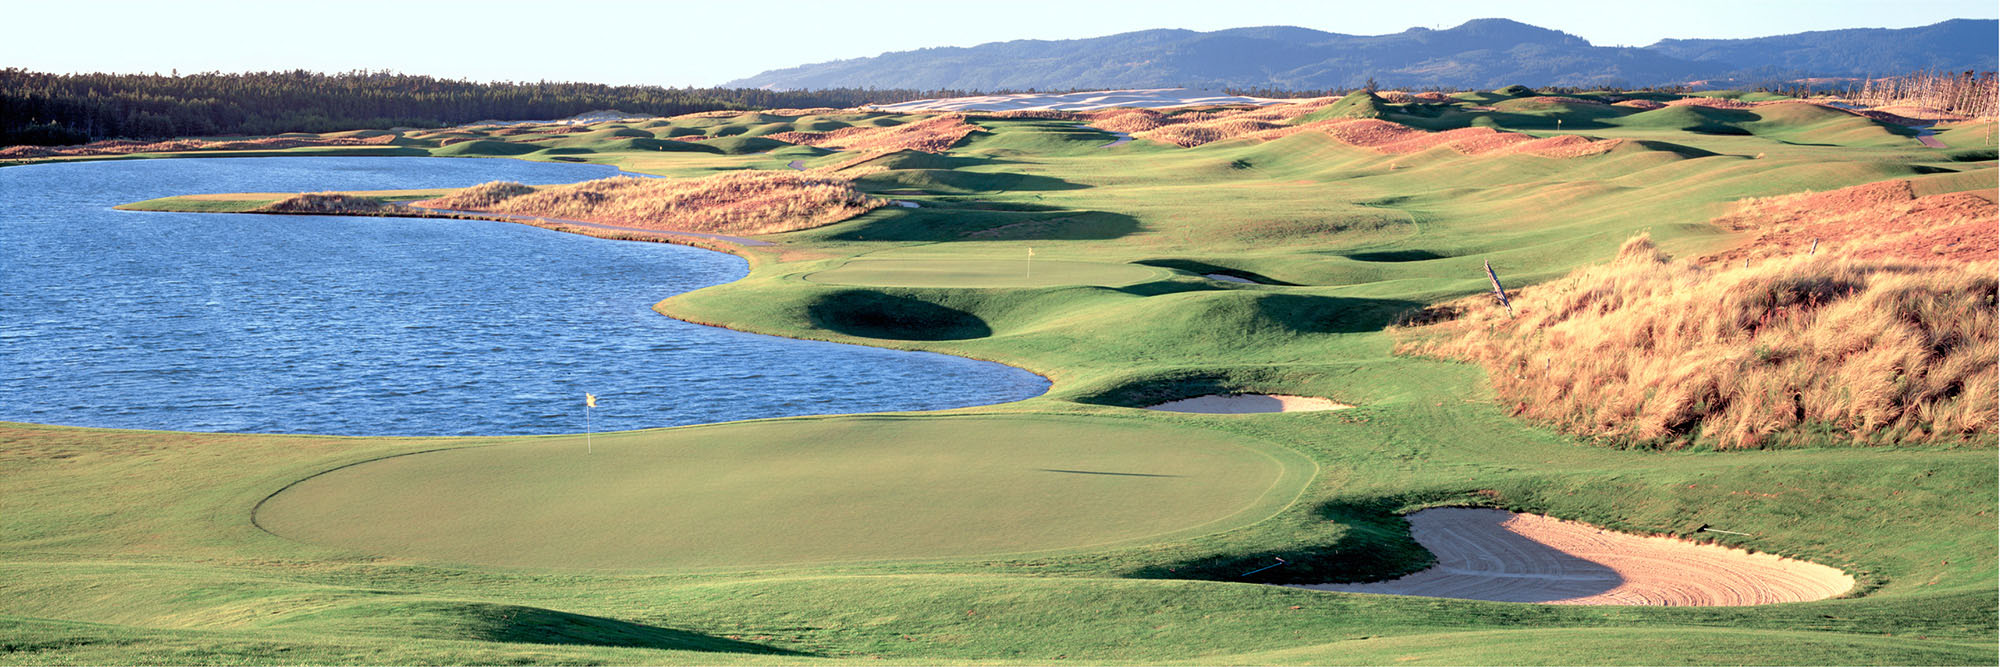 Golf Course Image - Sandpines No. 18